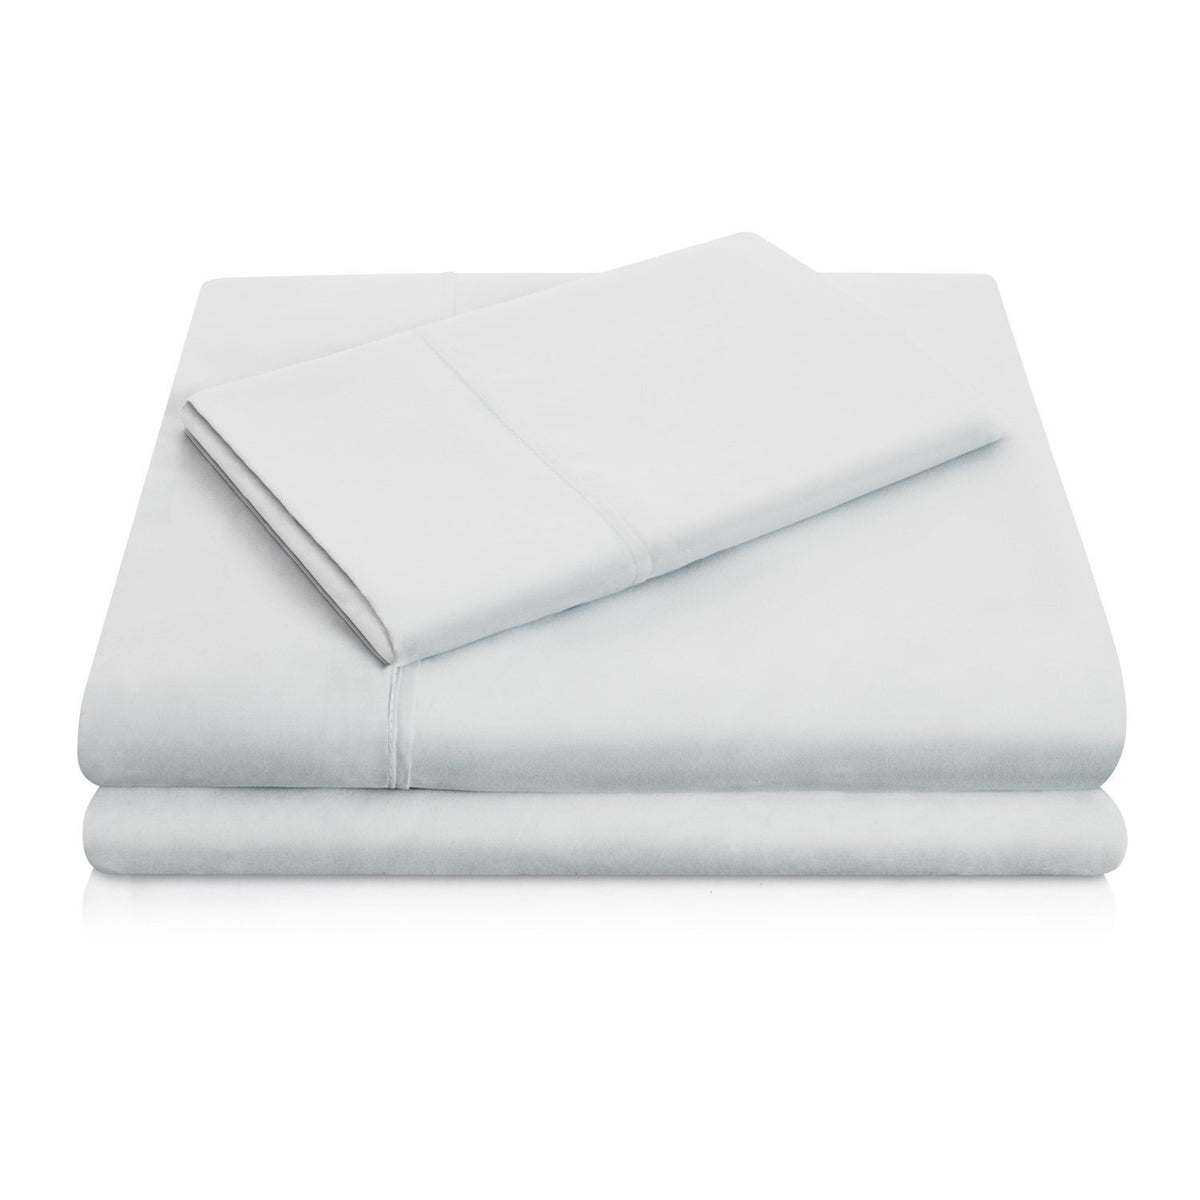 WOVEN Brushed Microfiber Sheet Set Sheet Set Malouf Twin XL Ash